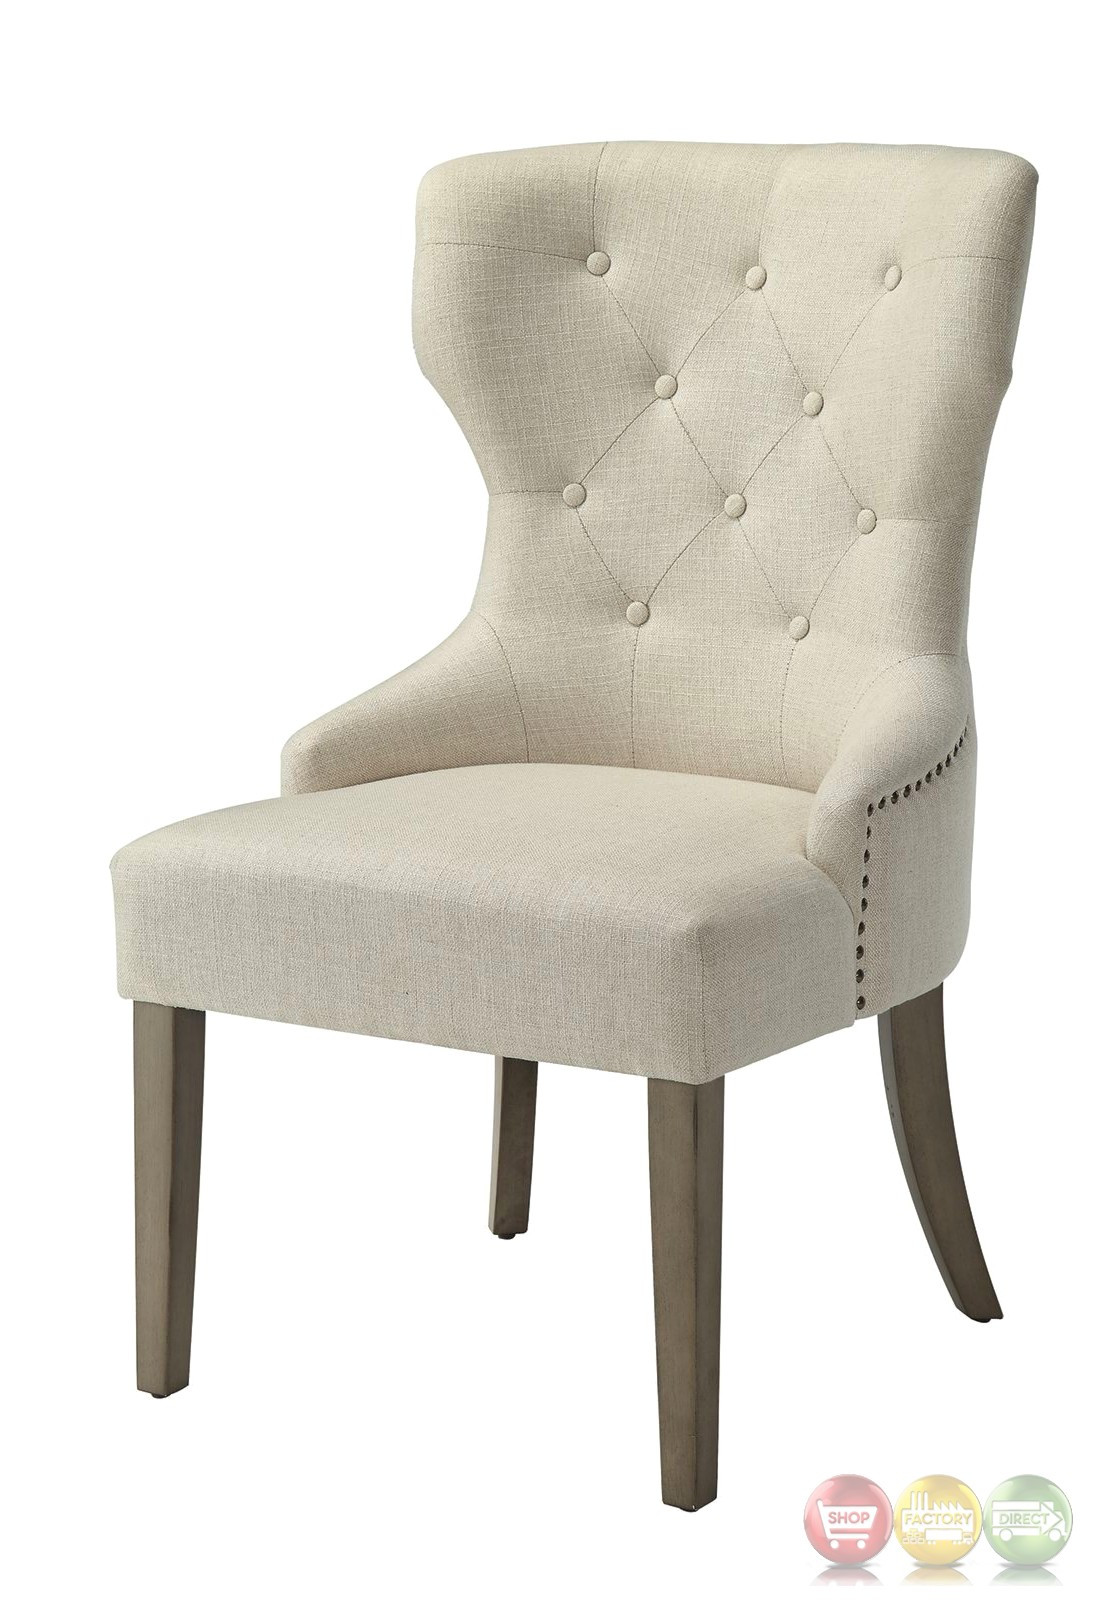 Best ideas about Wingback Dining Chair . Save or Pin Wingback Dining Chair Florence Dining Chair Now.